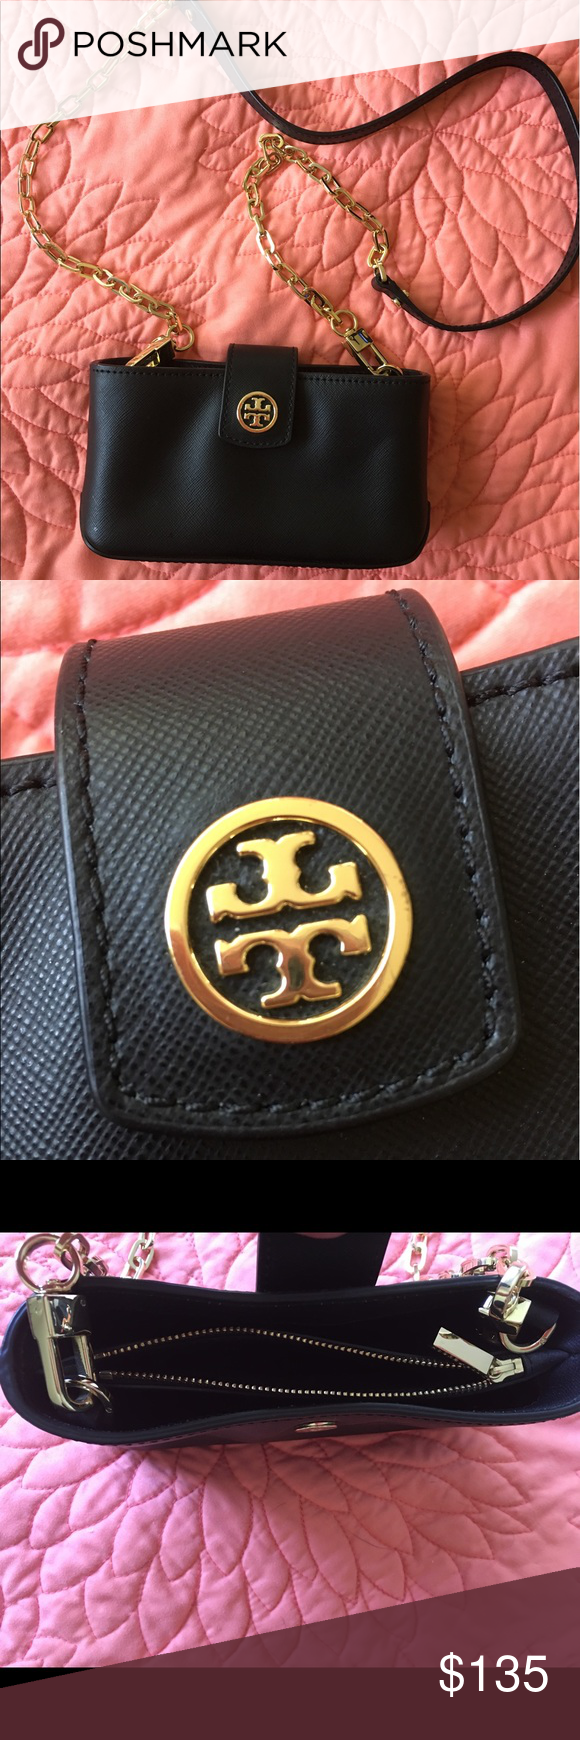 caec287b1561 Tory burch crossbody Authentic Tory burch Brand new used once small black  cross body. It s